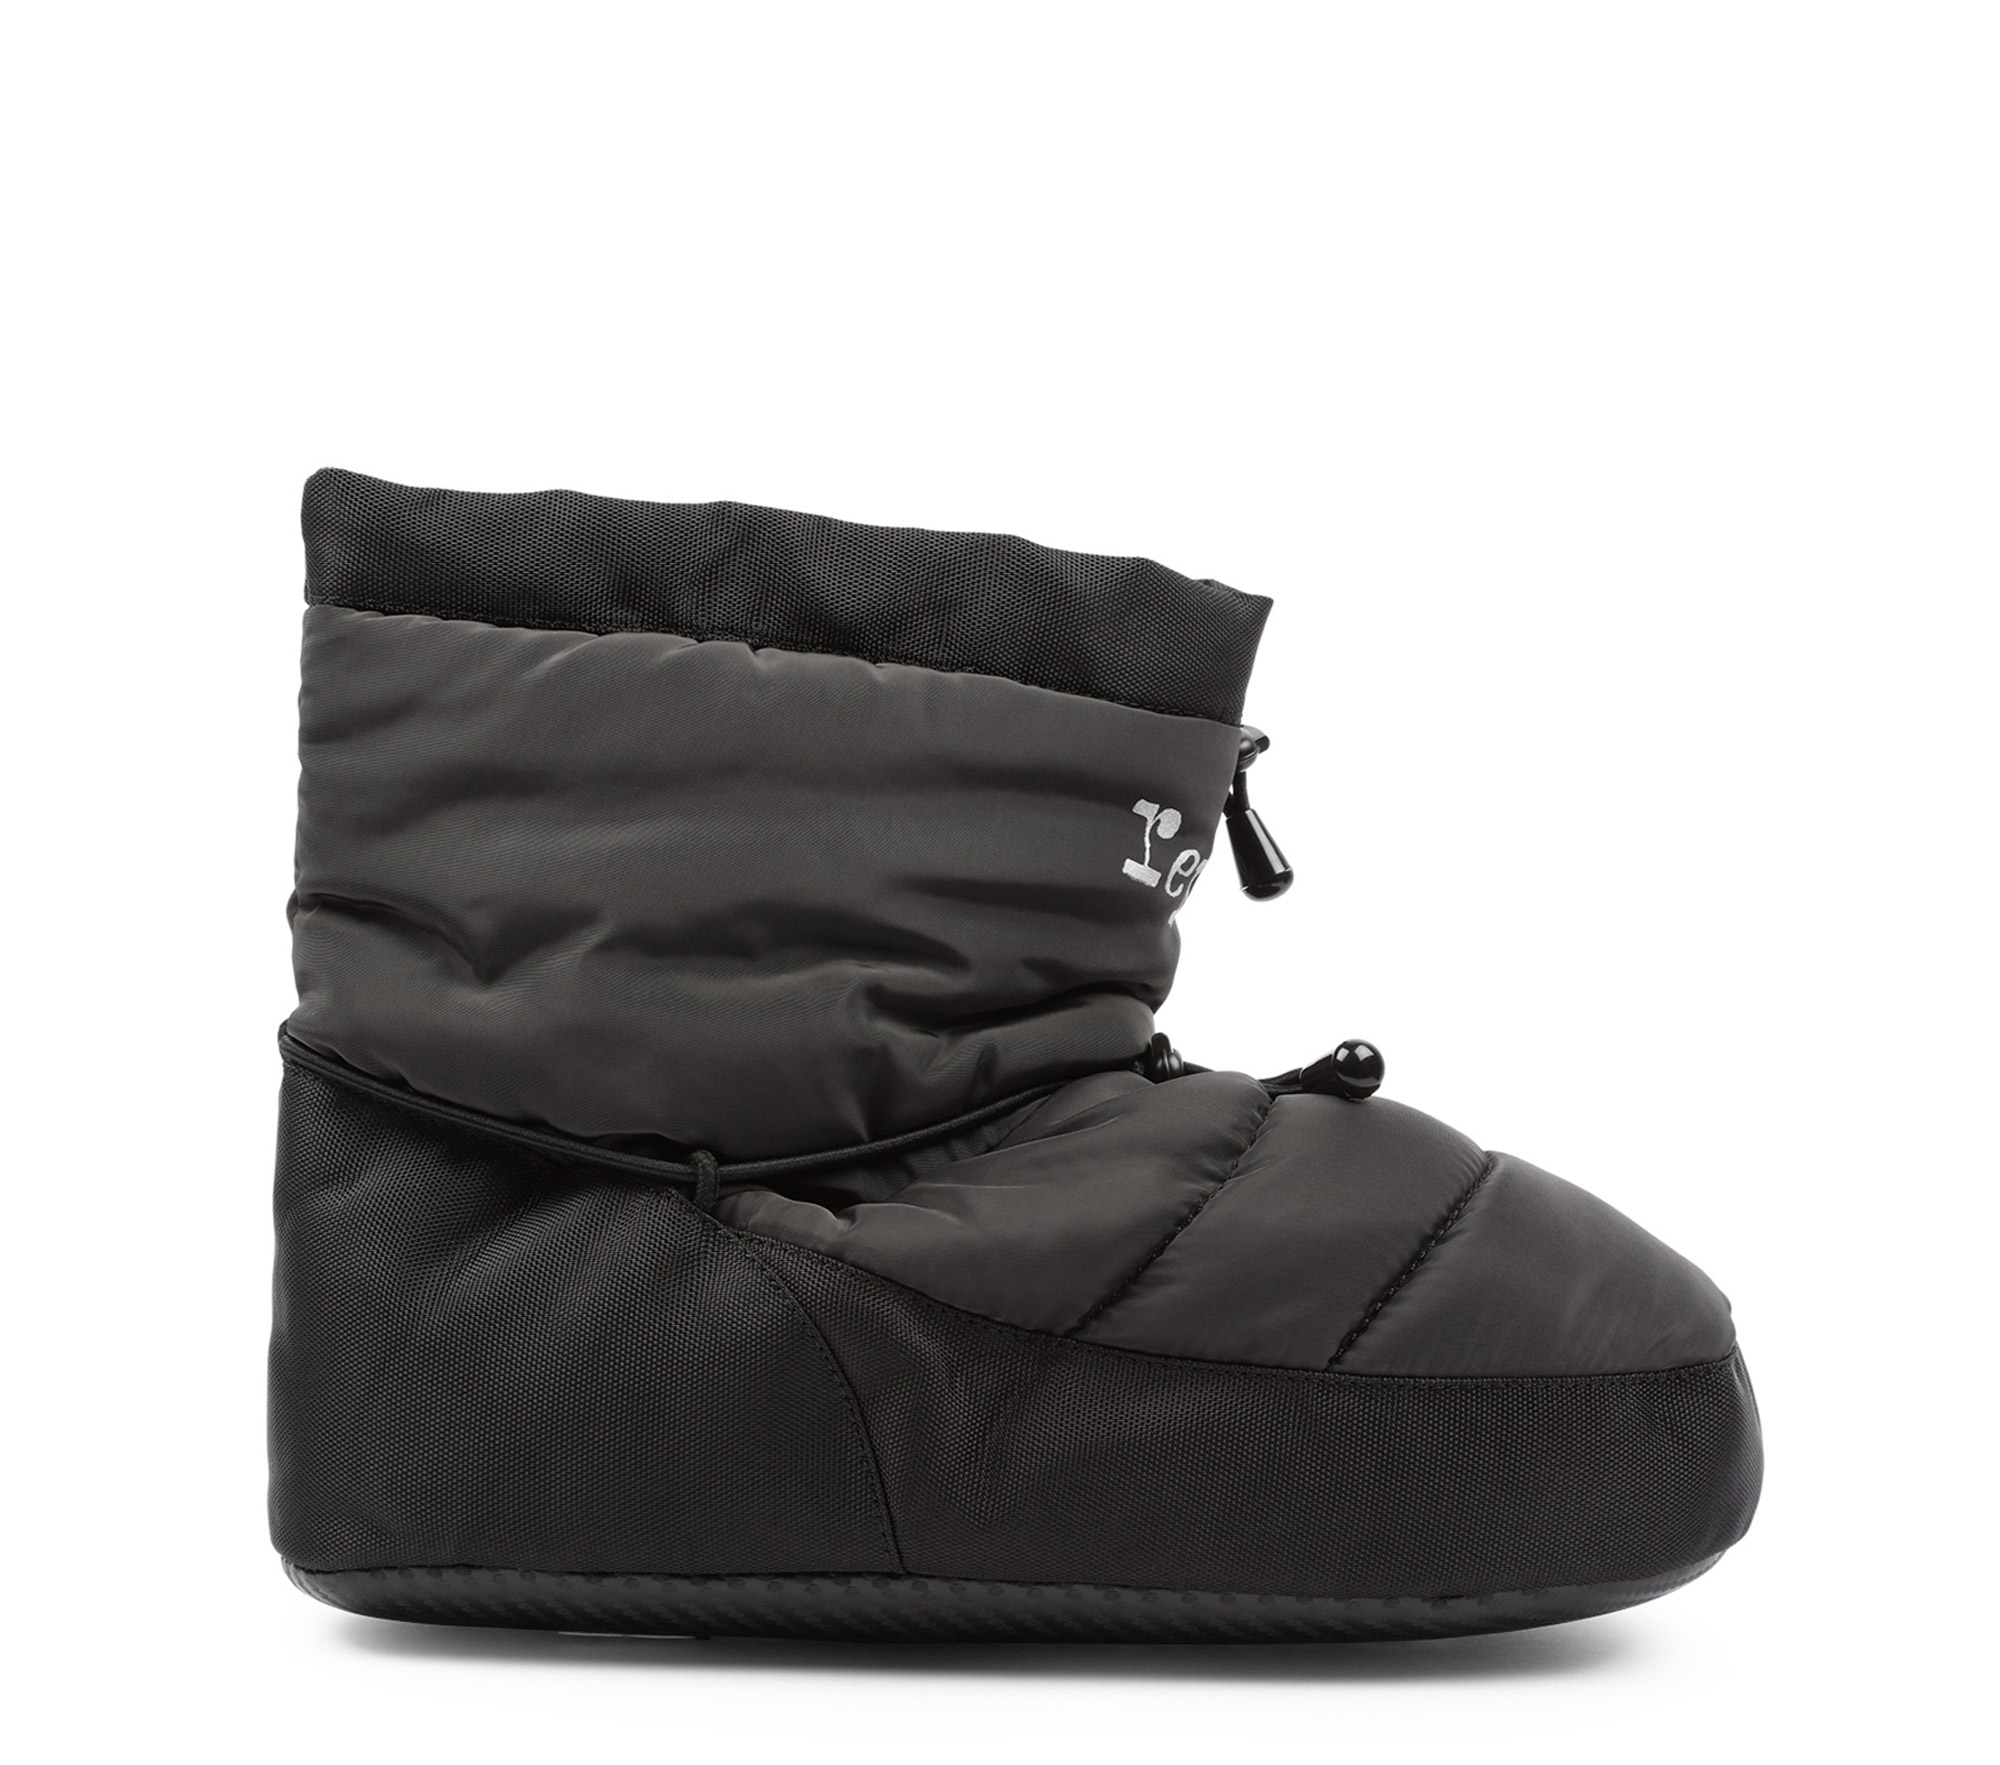 Warm-up boots